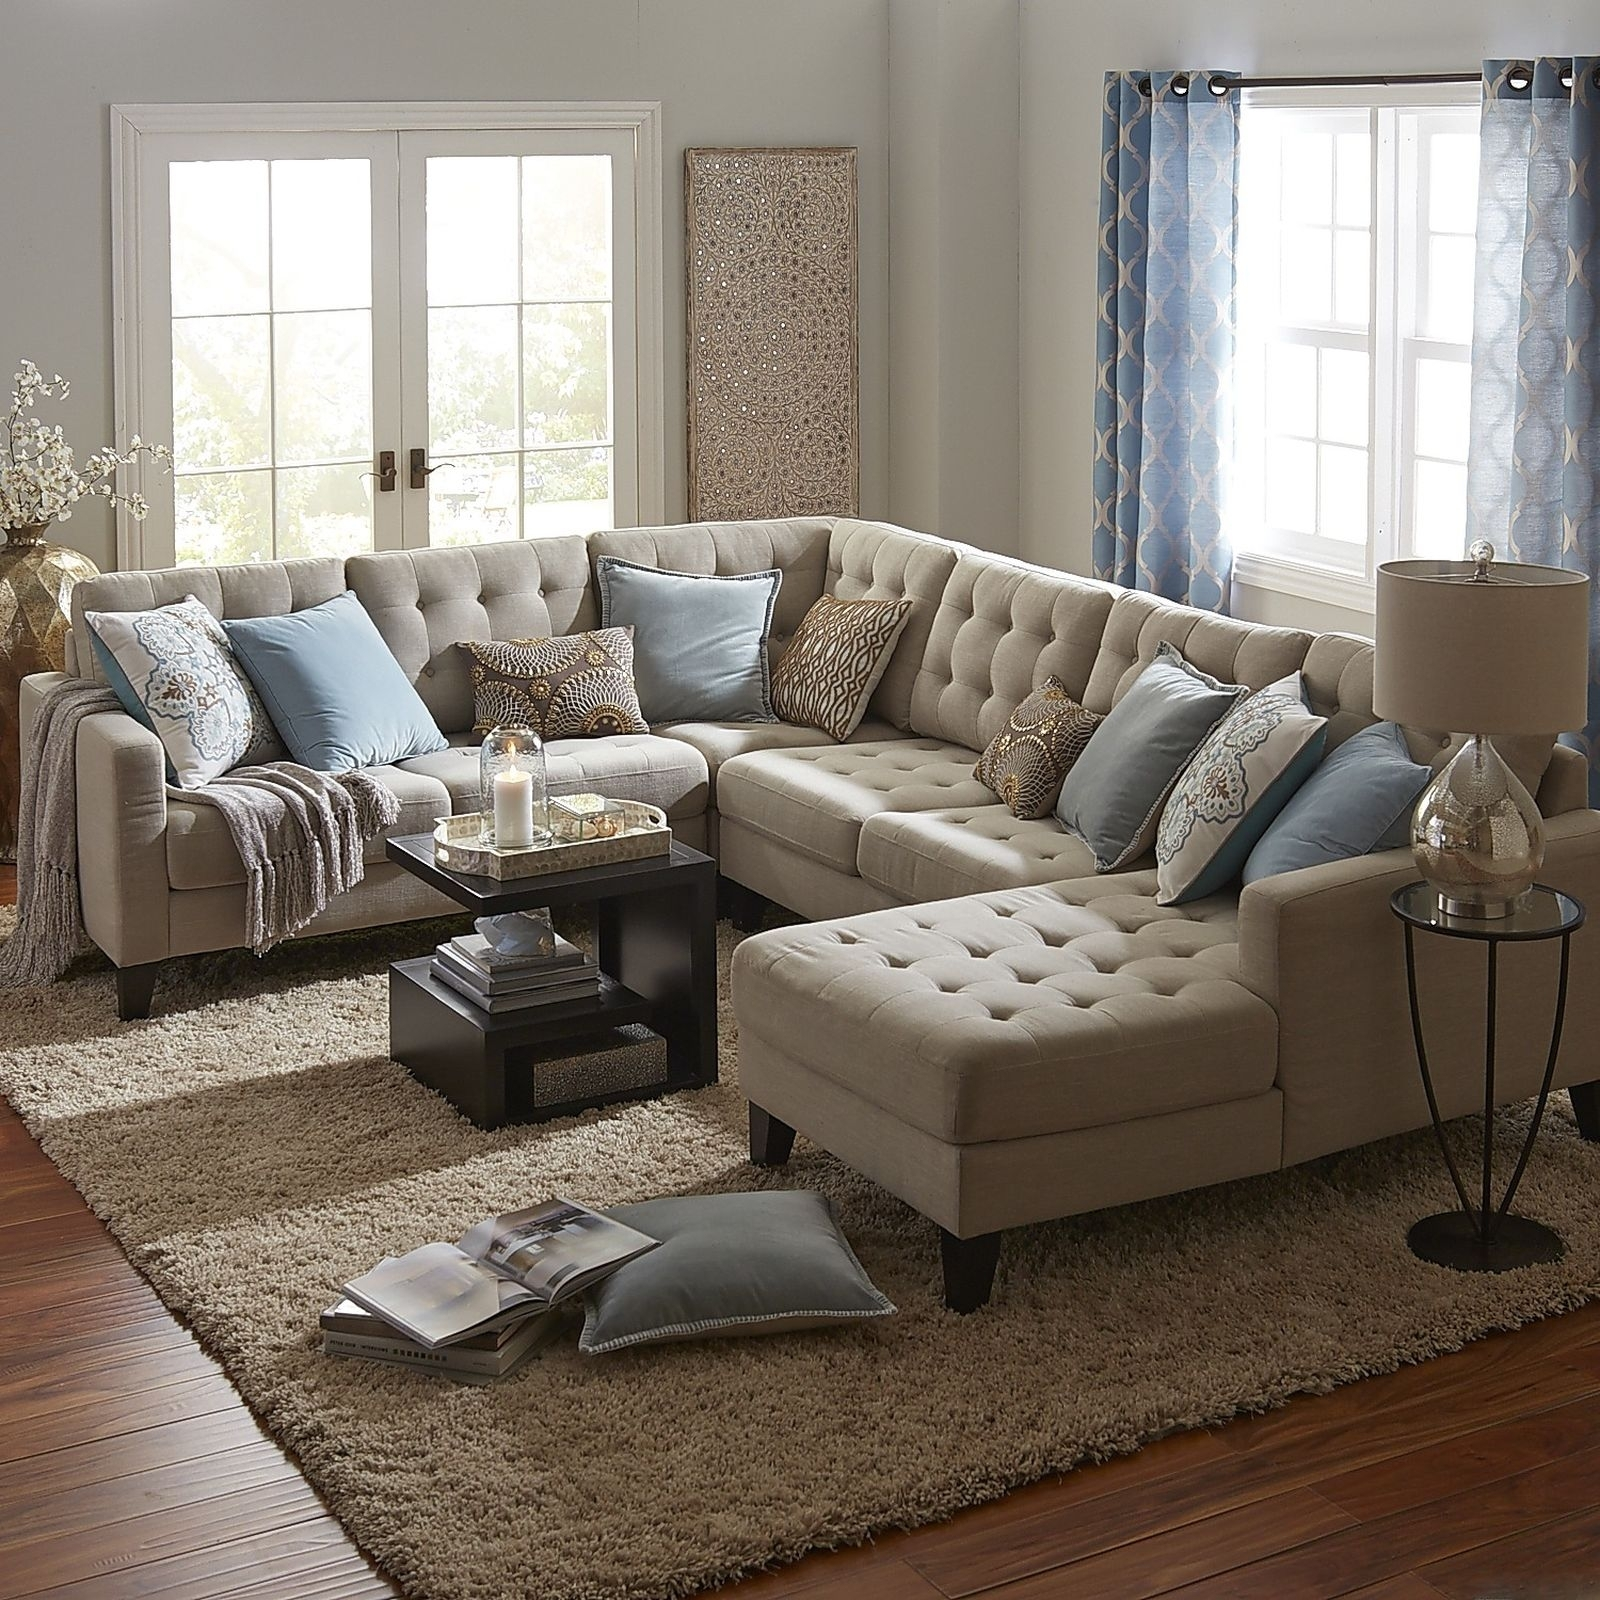 Sectional Sofas. Epic Sectional Sofas 89 Living Room Sofa within Sectional Sofas (Image 6 of 10)